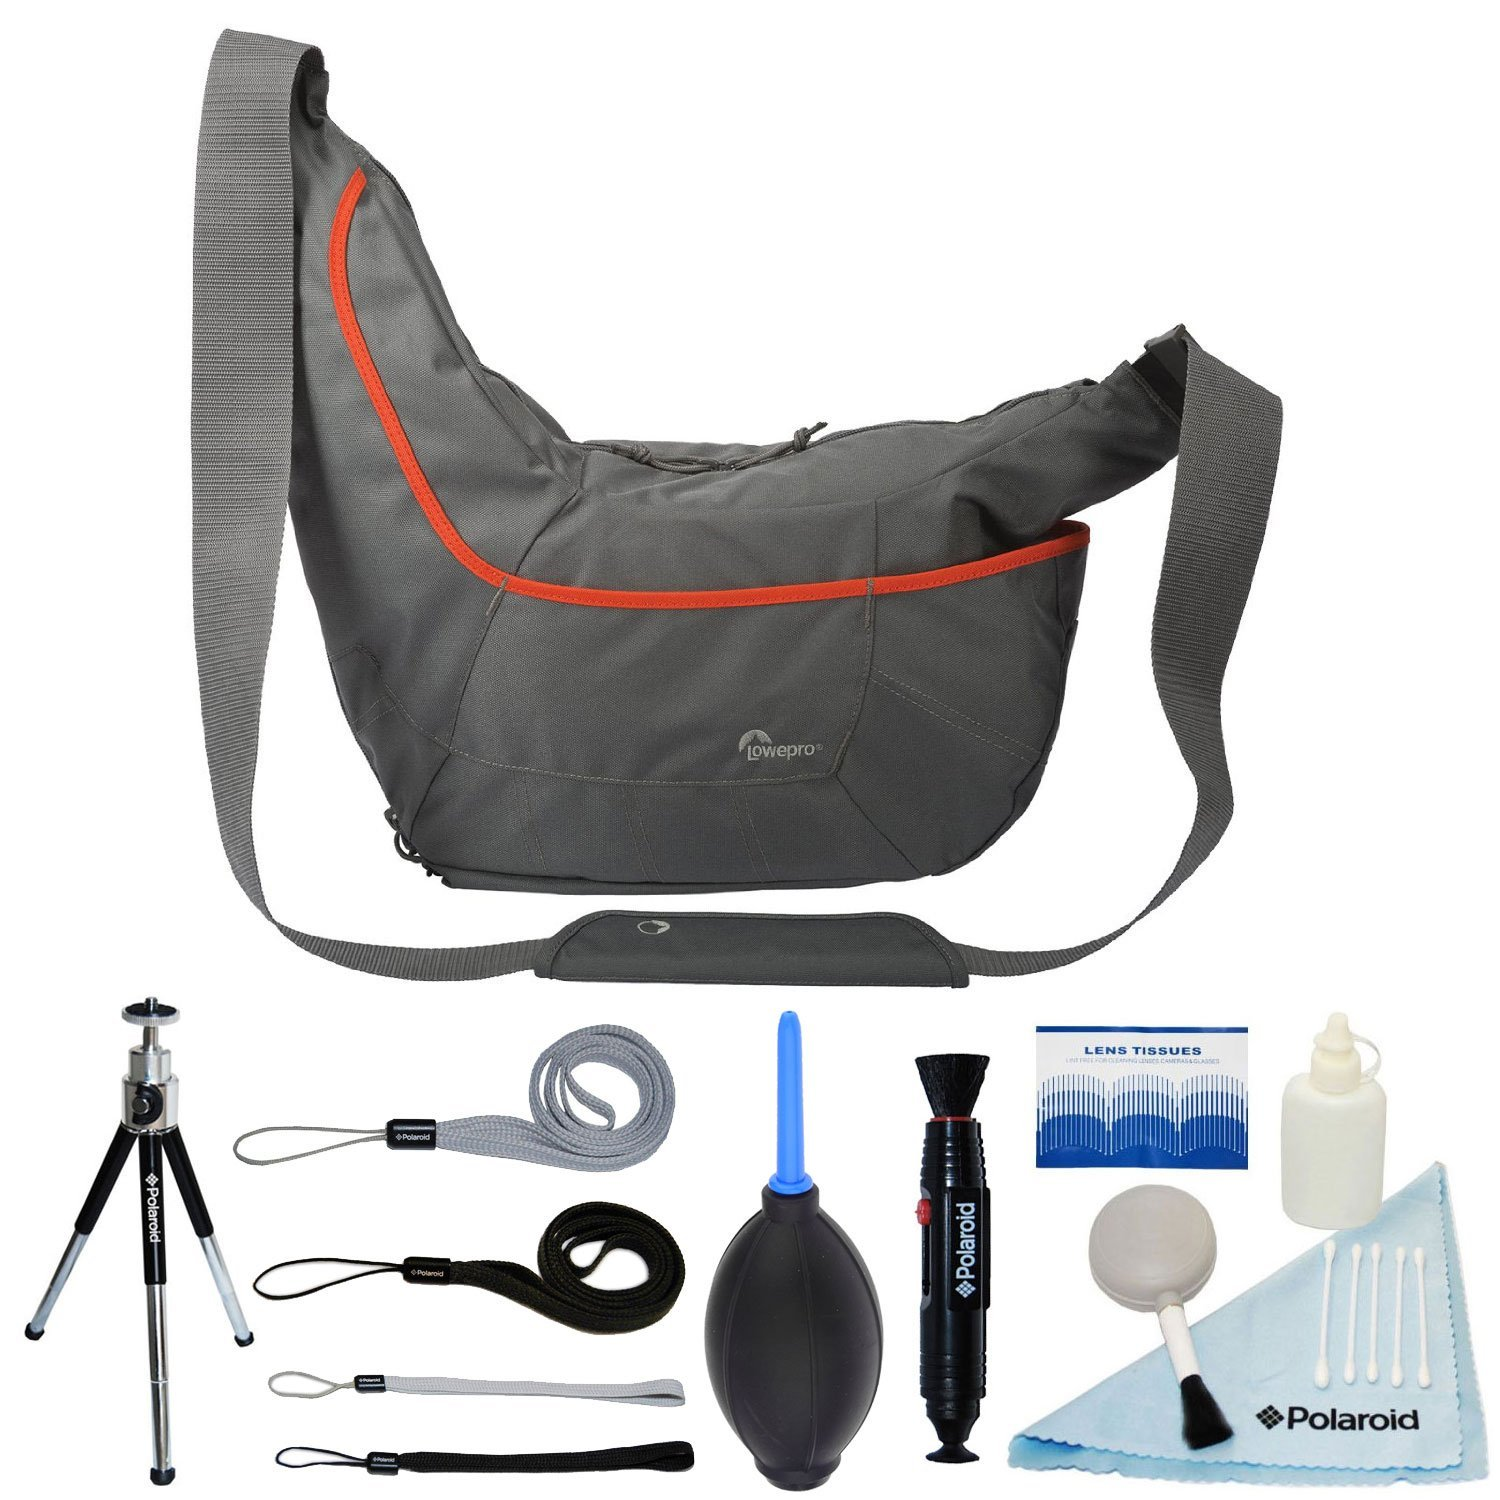 Lowepro Passport Sling III Shoulder Bag / Day-Pack for Camera and For Ordinary Use (Grey) + FREE Polaroid Accessory Bundle